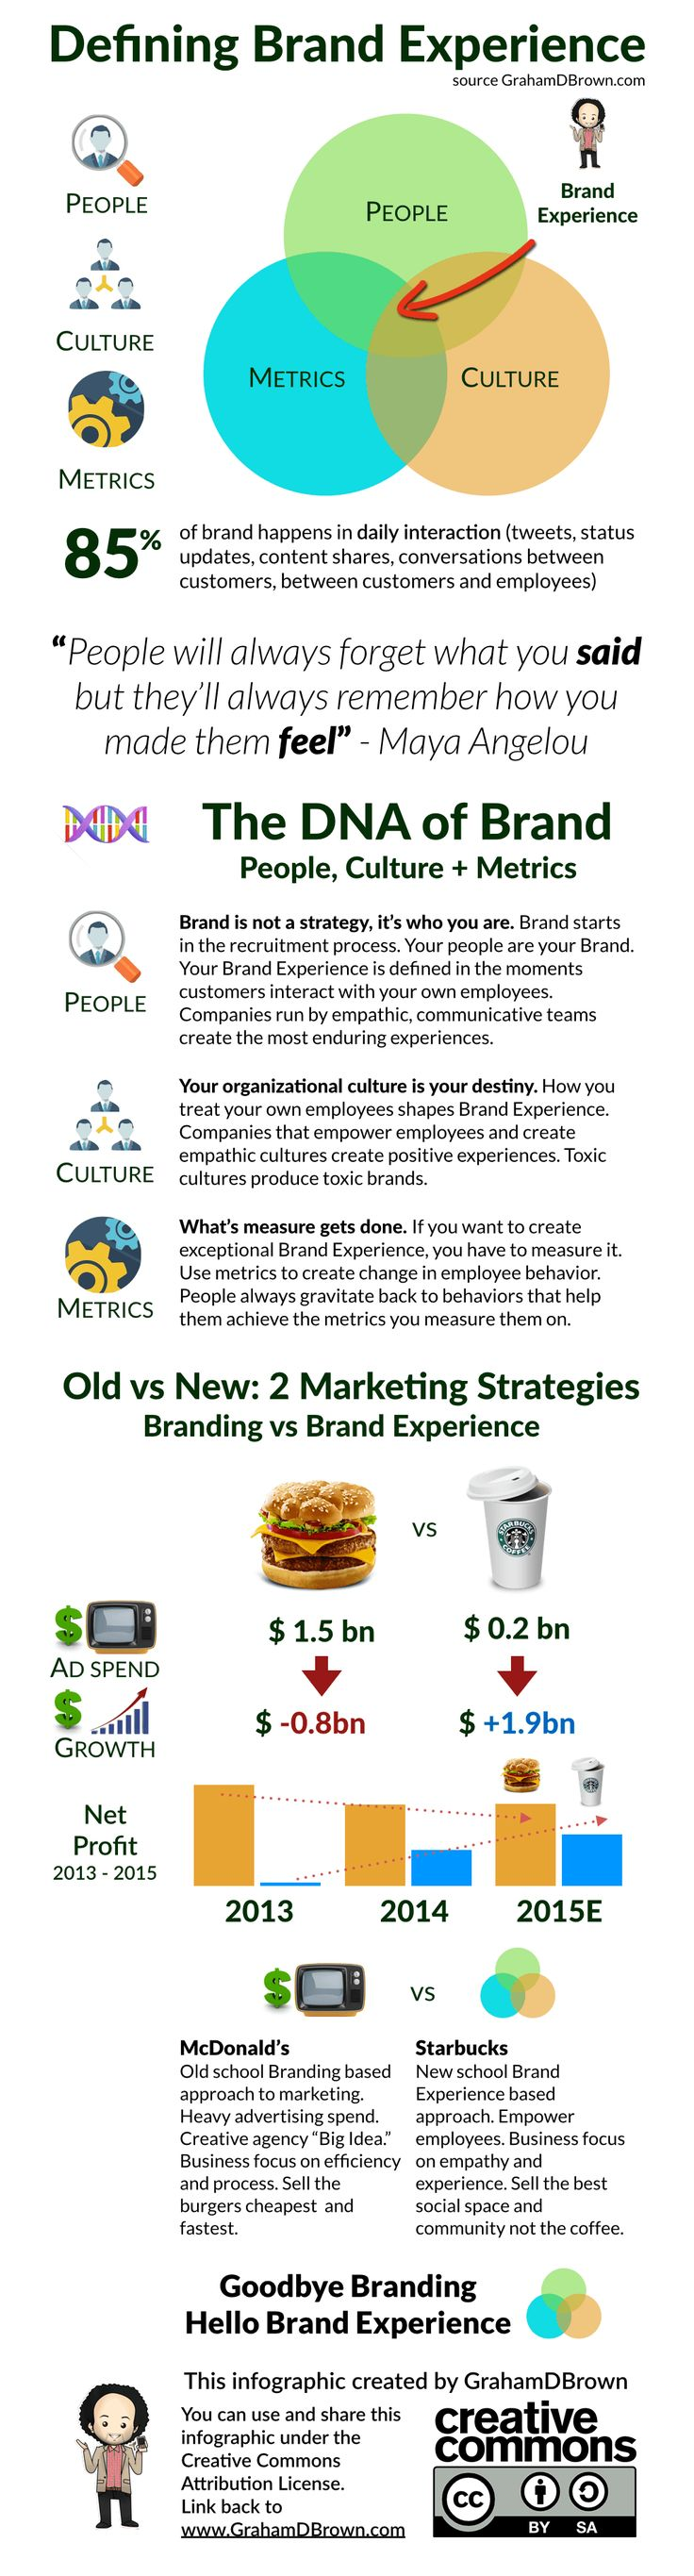 The best way to understand Brand Experience is to visualize it. So here goes - my attempt at a Brand Experience infographic in an easy to see form for you.